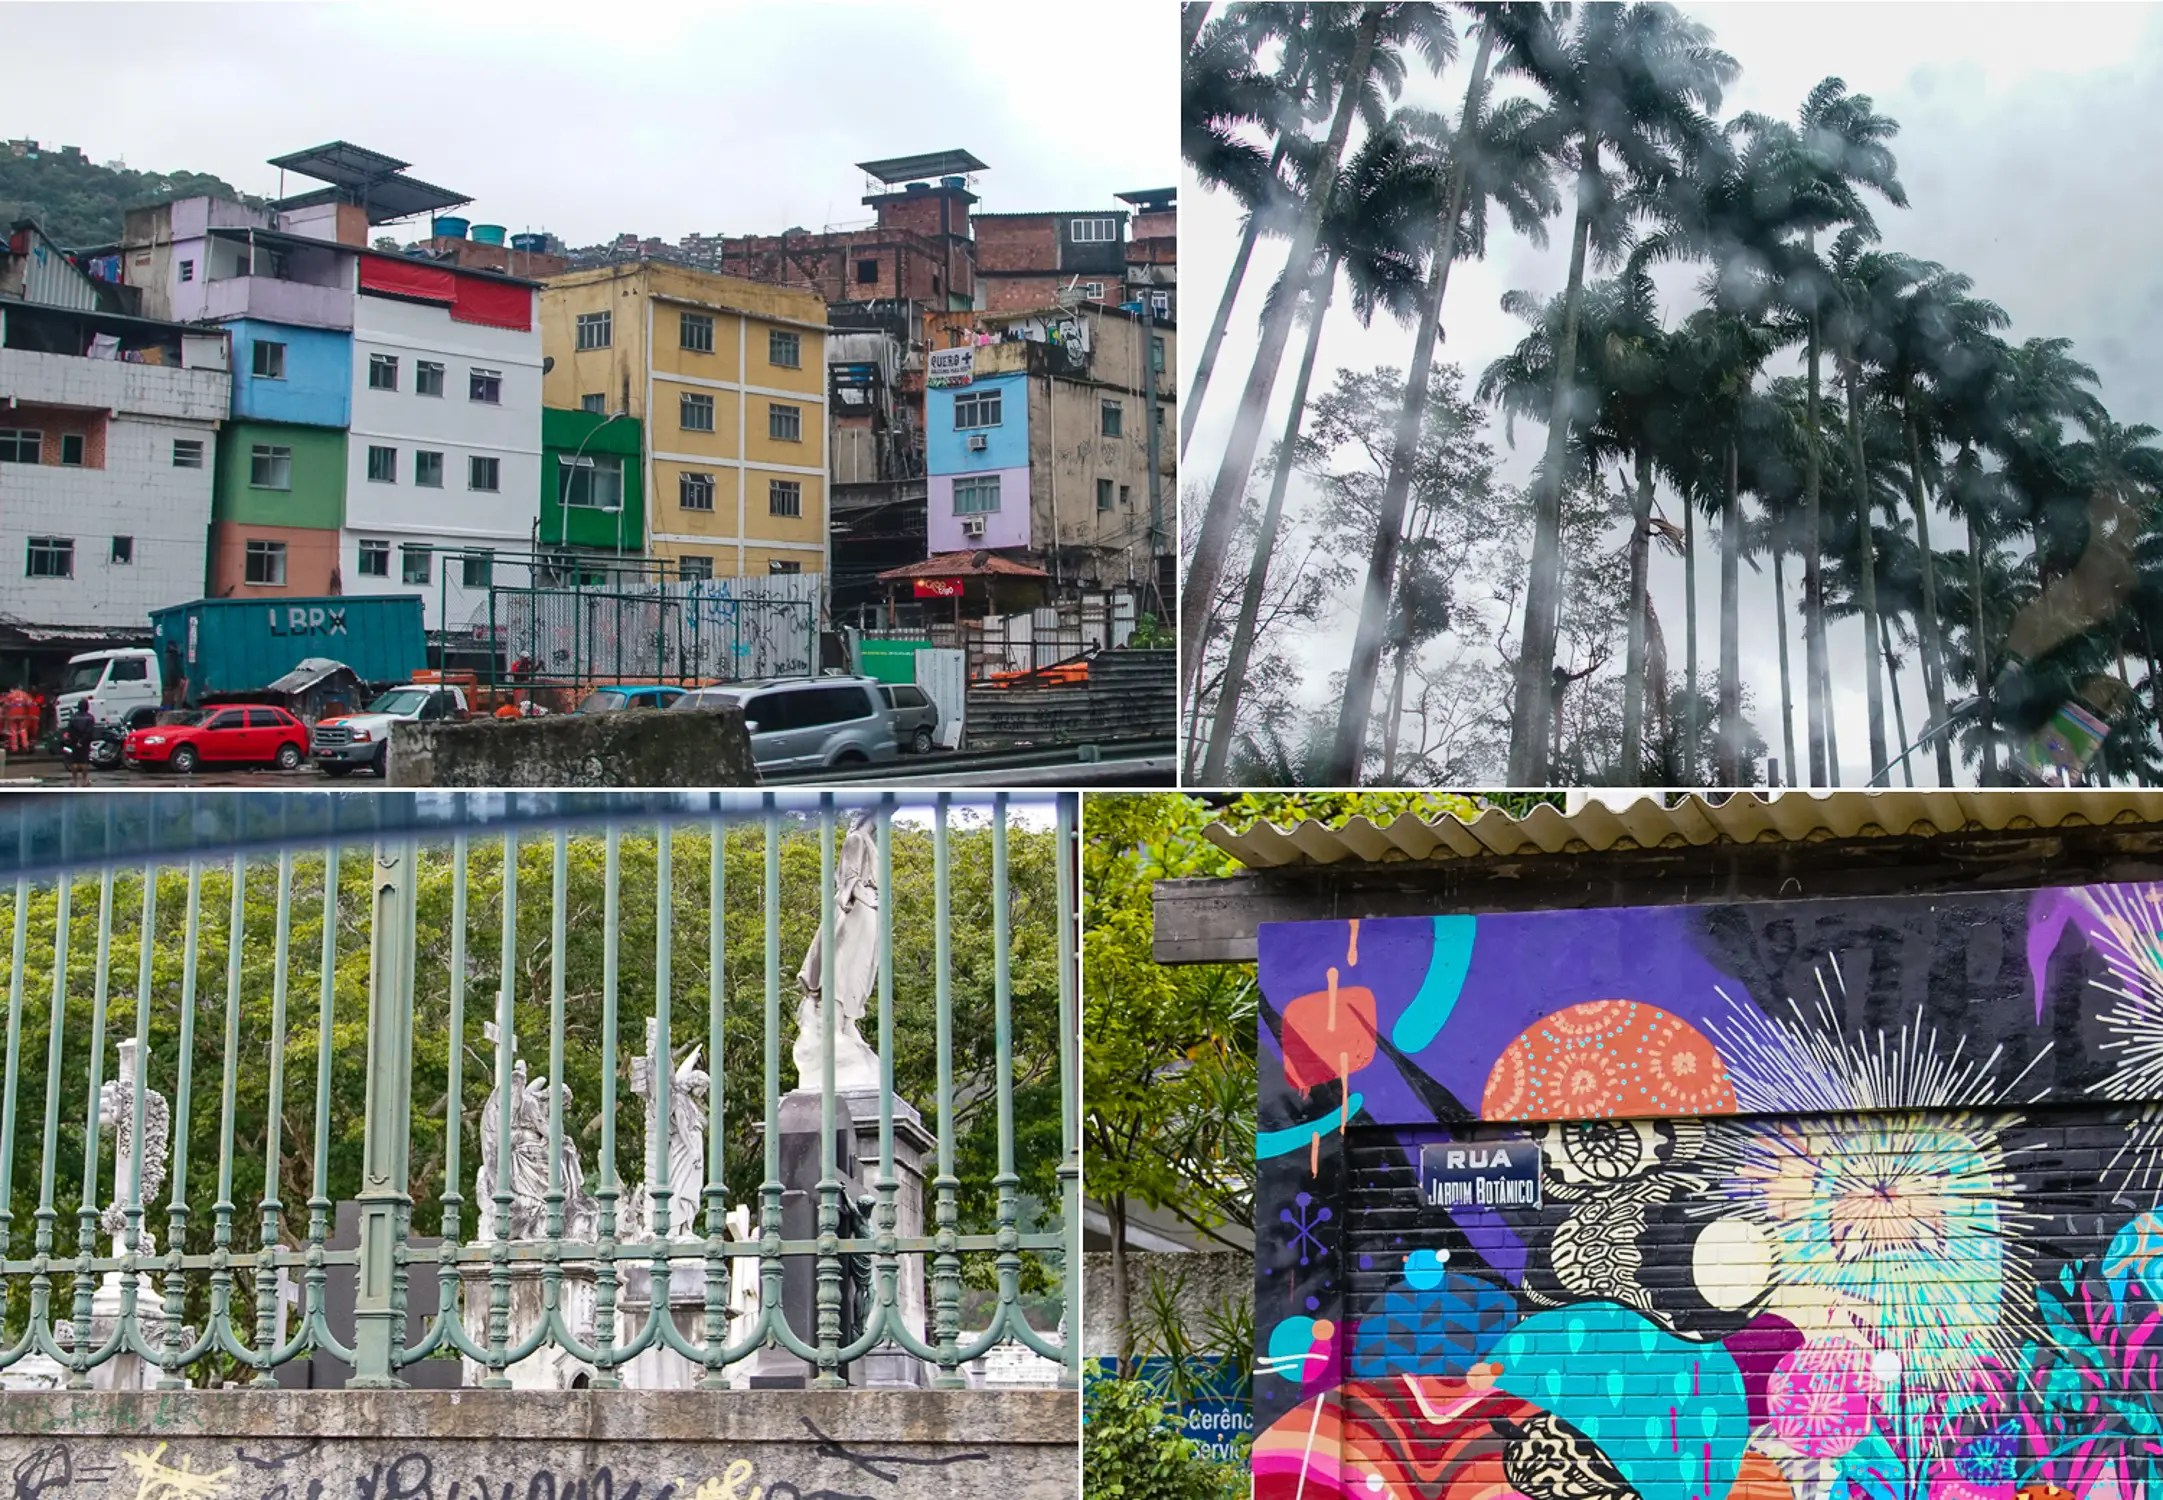 Top Left: Rocinha, the largest Favela in Rio is adjacent to the wealthiest area of Rio. They share the same zip code interestingly enough.